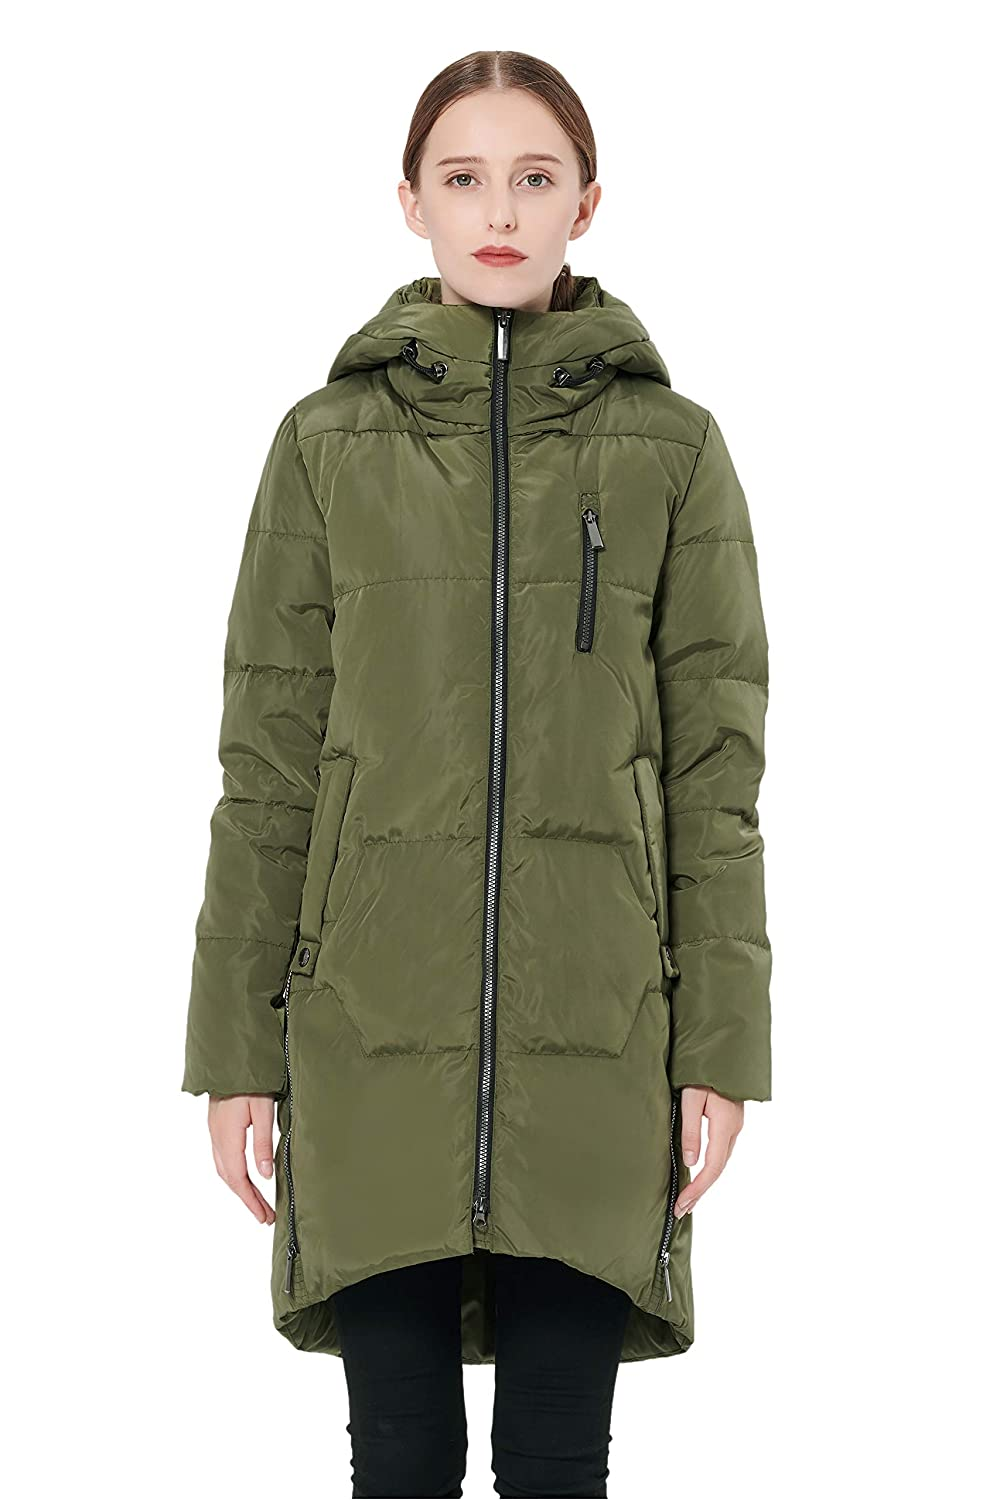 701a4ffc59de Amazon.com  Orolay Women s Stylish Down Coat Winter Jacket with Hood ...